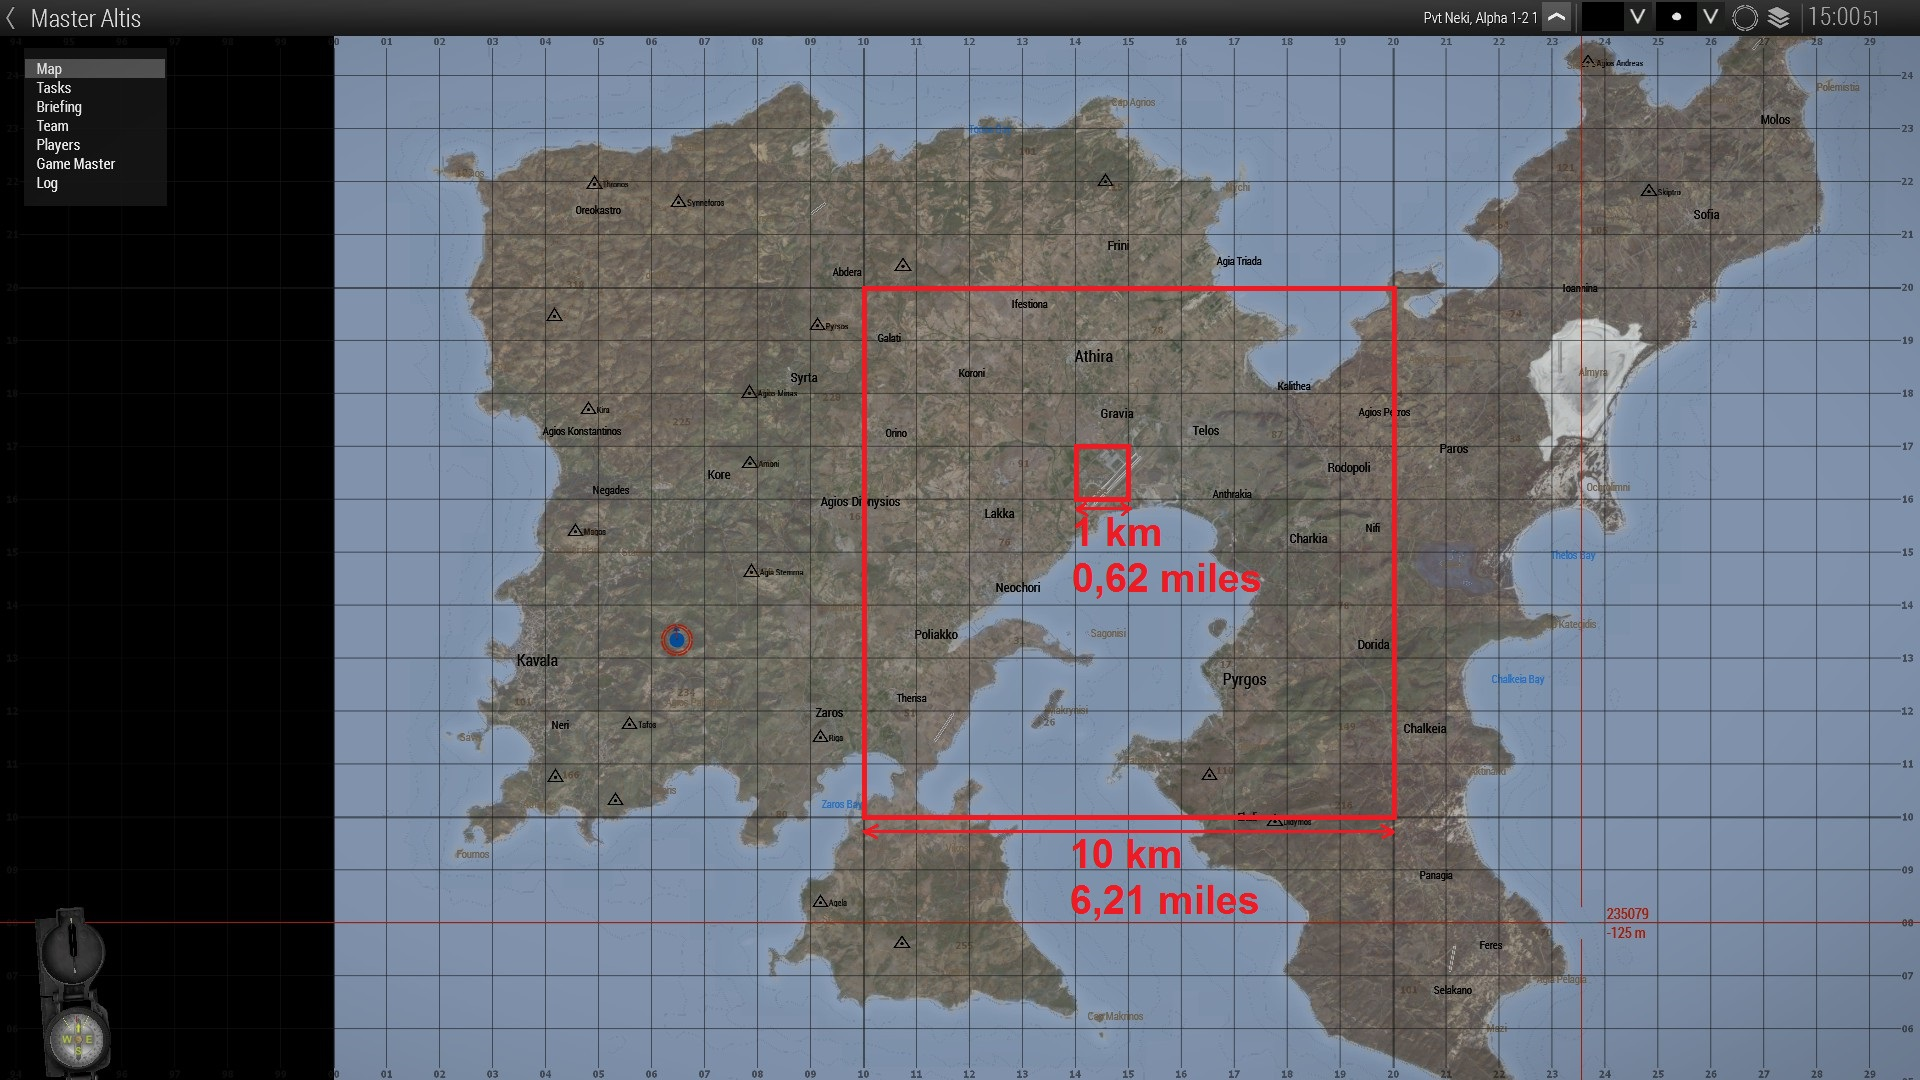 Steam Community :: Guide :: [EYE] The Map